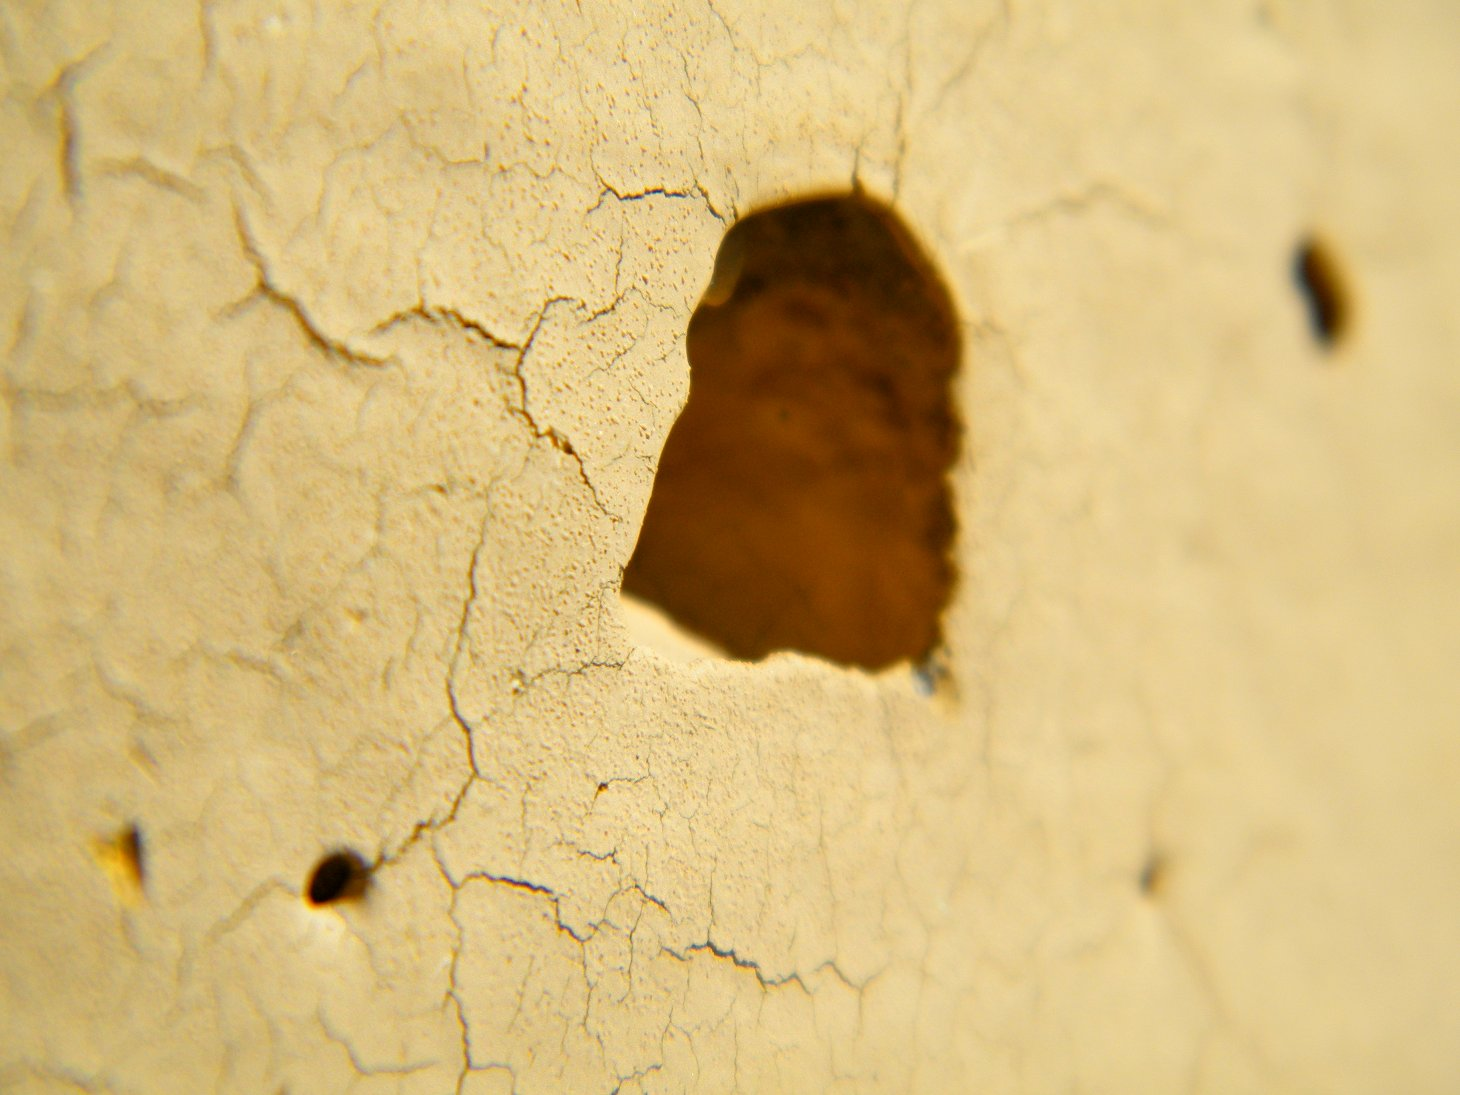 Macro Yellow Cracked Wall with Hole